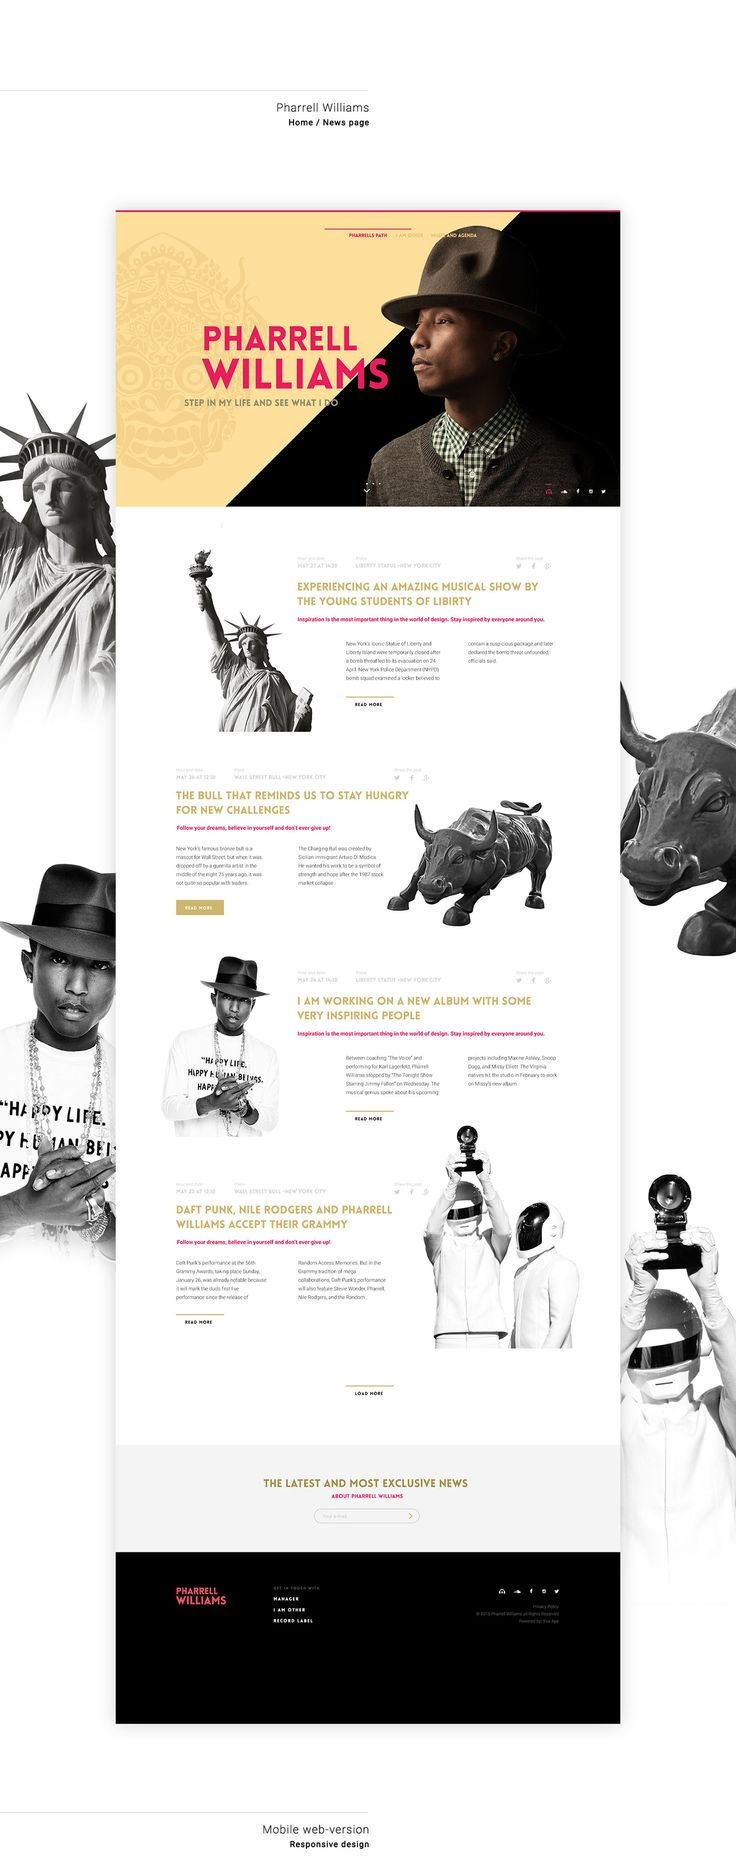 Beautiful Digital Branding: Discover the World of Pharrell Williams